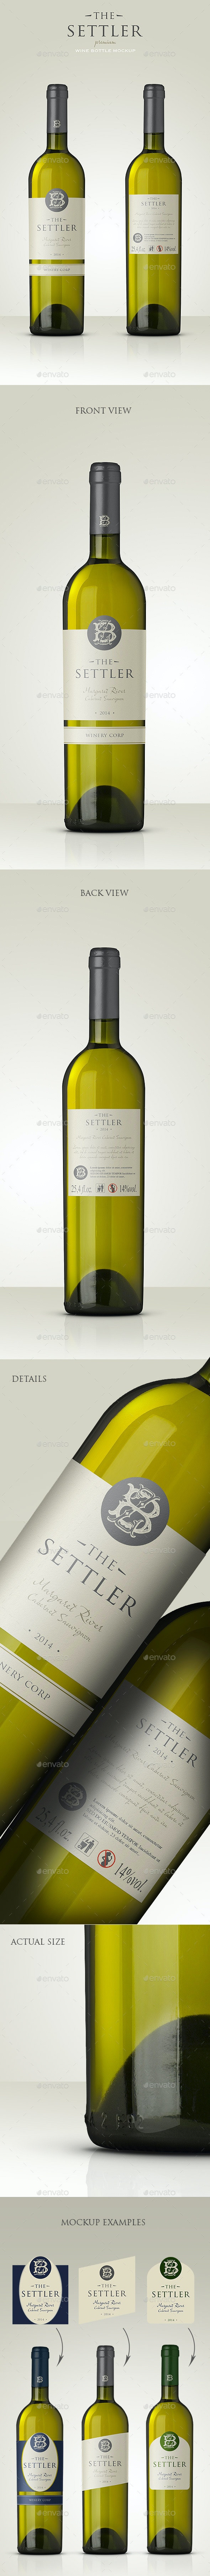 Premium White Wine Mockup - Food and Drink Packaging